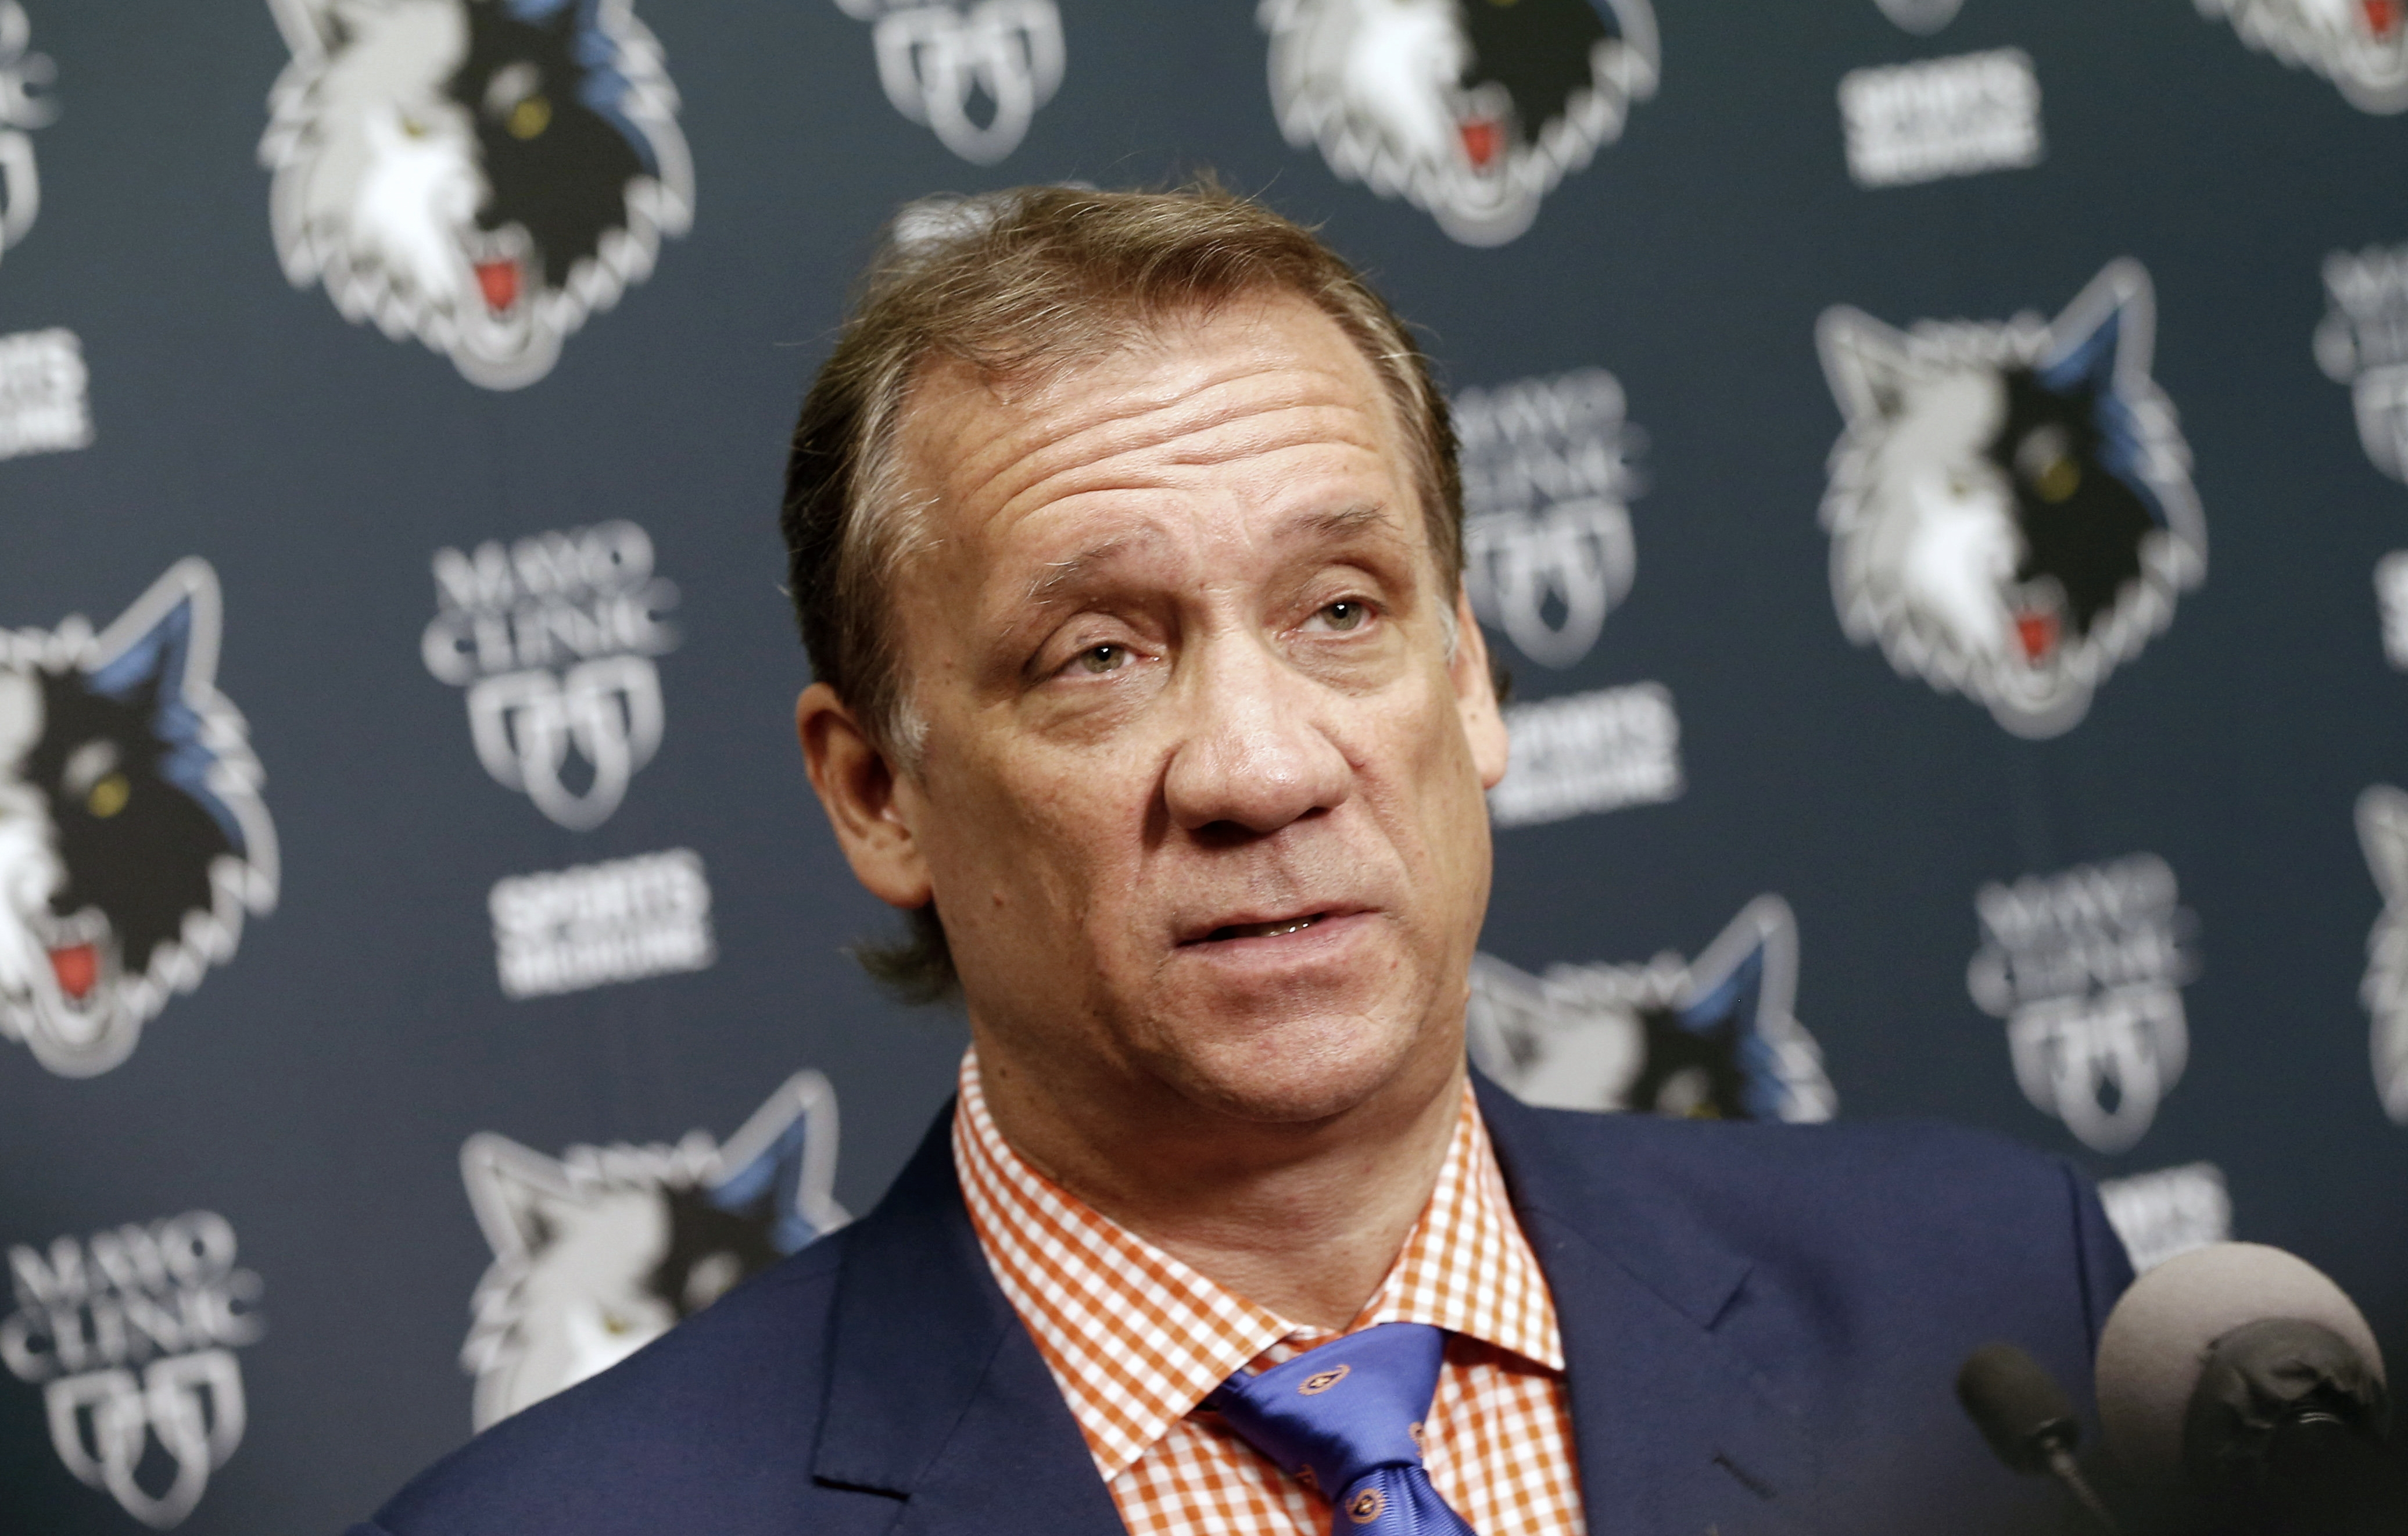 FILE - In this June 25, 2015, file photo, Minnesota Timberwolves president and coach Flip Saunders addresses members of the media during an NBA basketball news conference in Minneapolis. Sam Mitchell will replace Saunders as coach of the Timberwolves in t